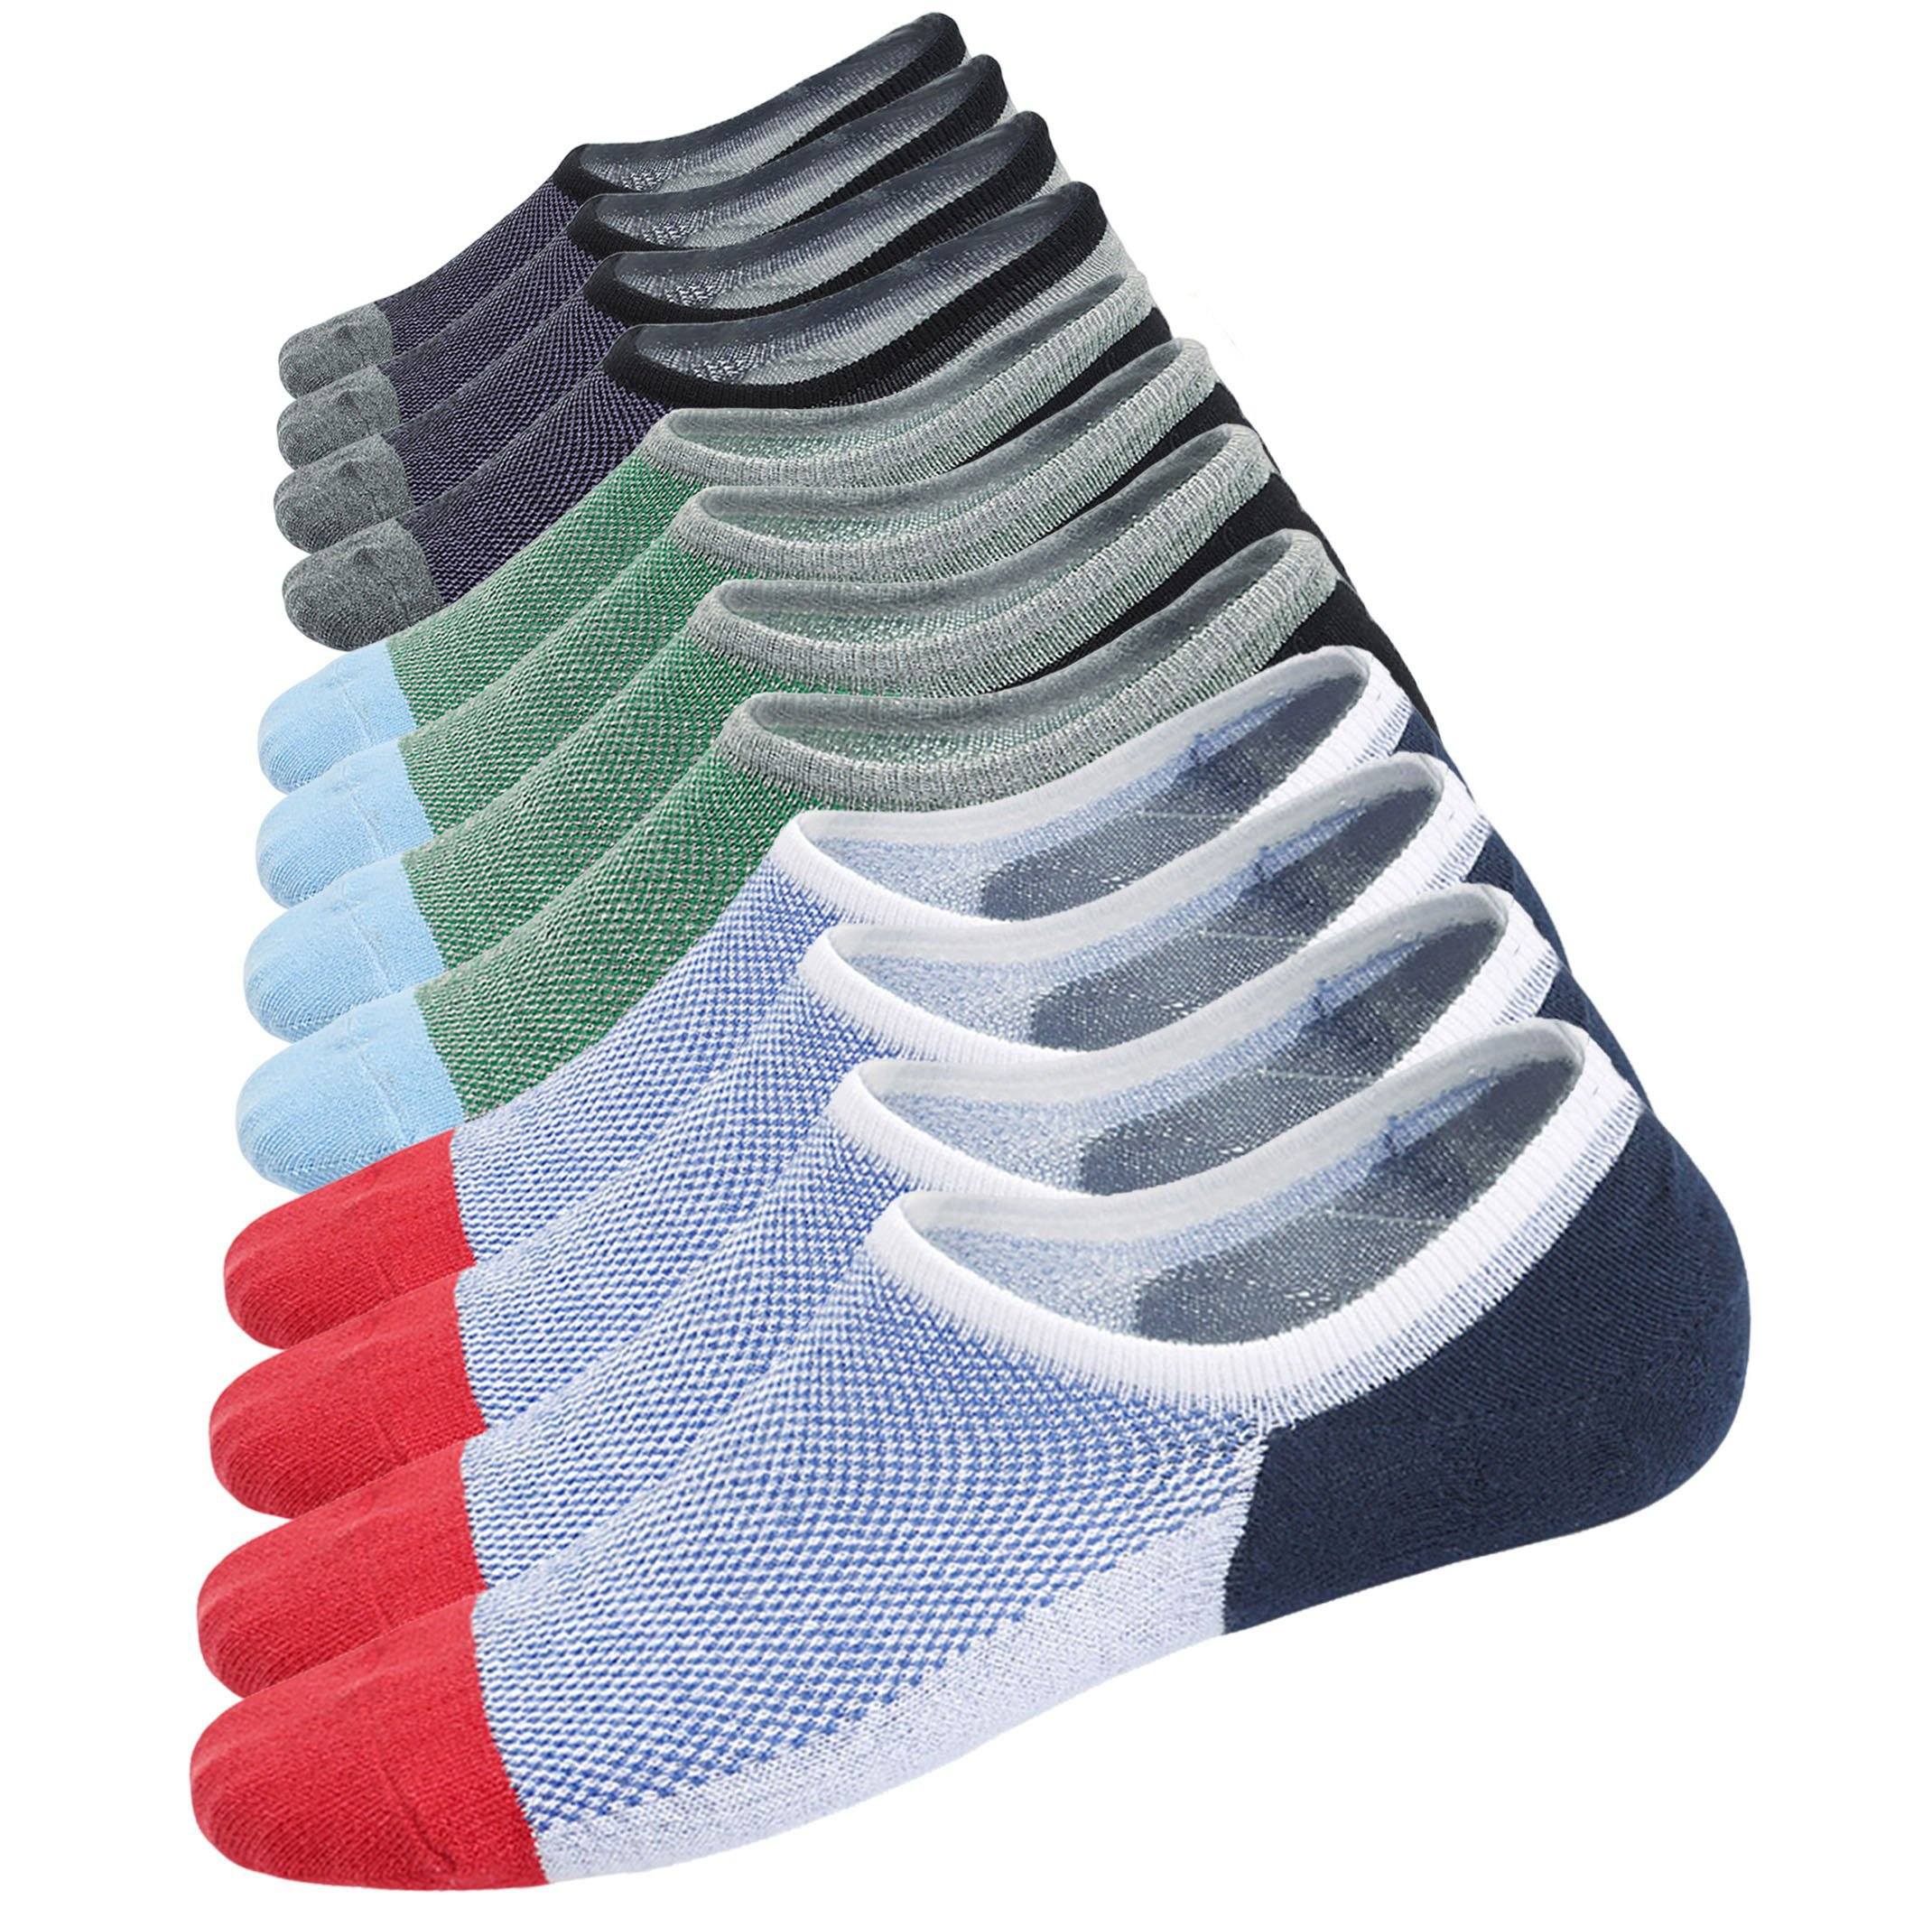 Spikerking Men No Show Cotton Deodorant Anti Off 3 Pack Crew Socks (Size:6-11) (US Shoe Size 6-11, 6 Pairs(2gray2red2skyblue)